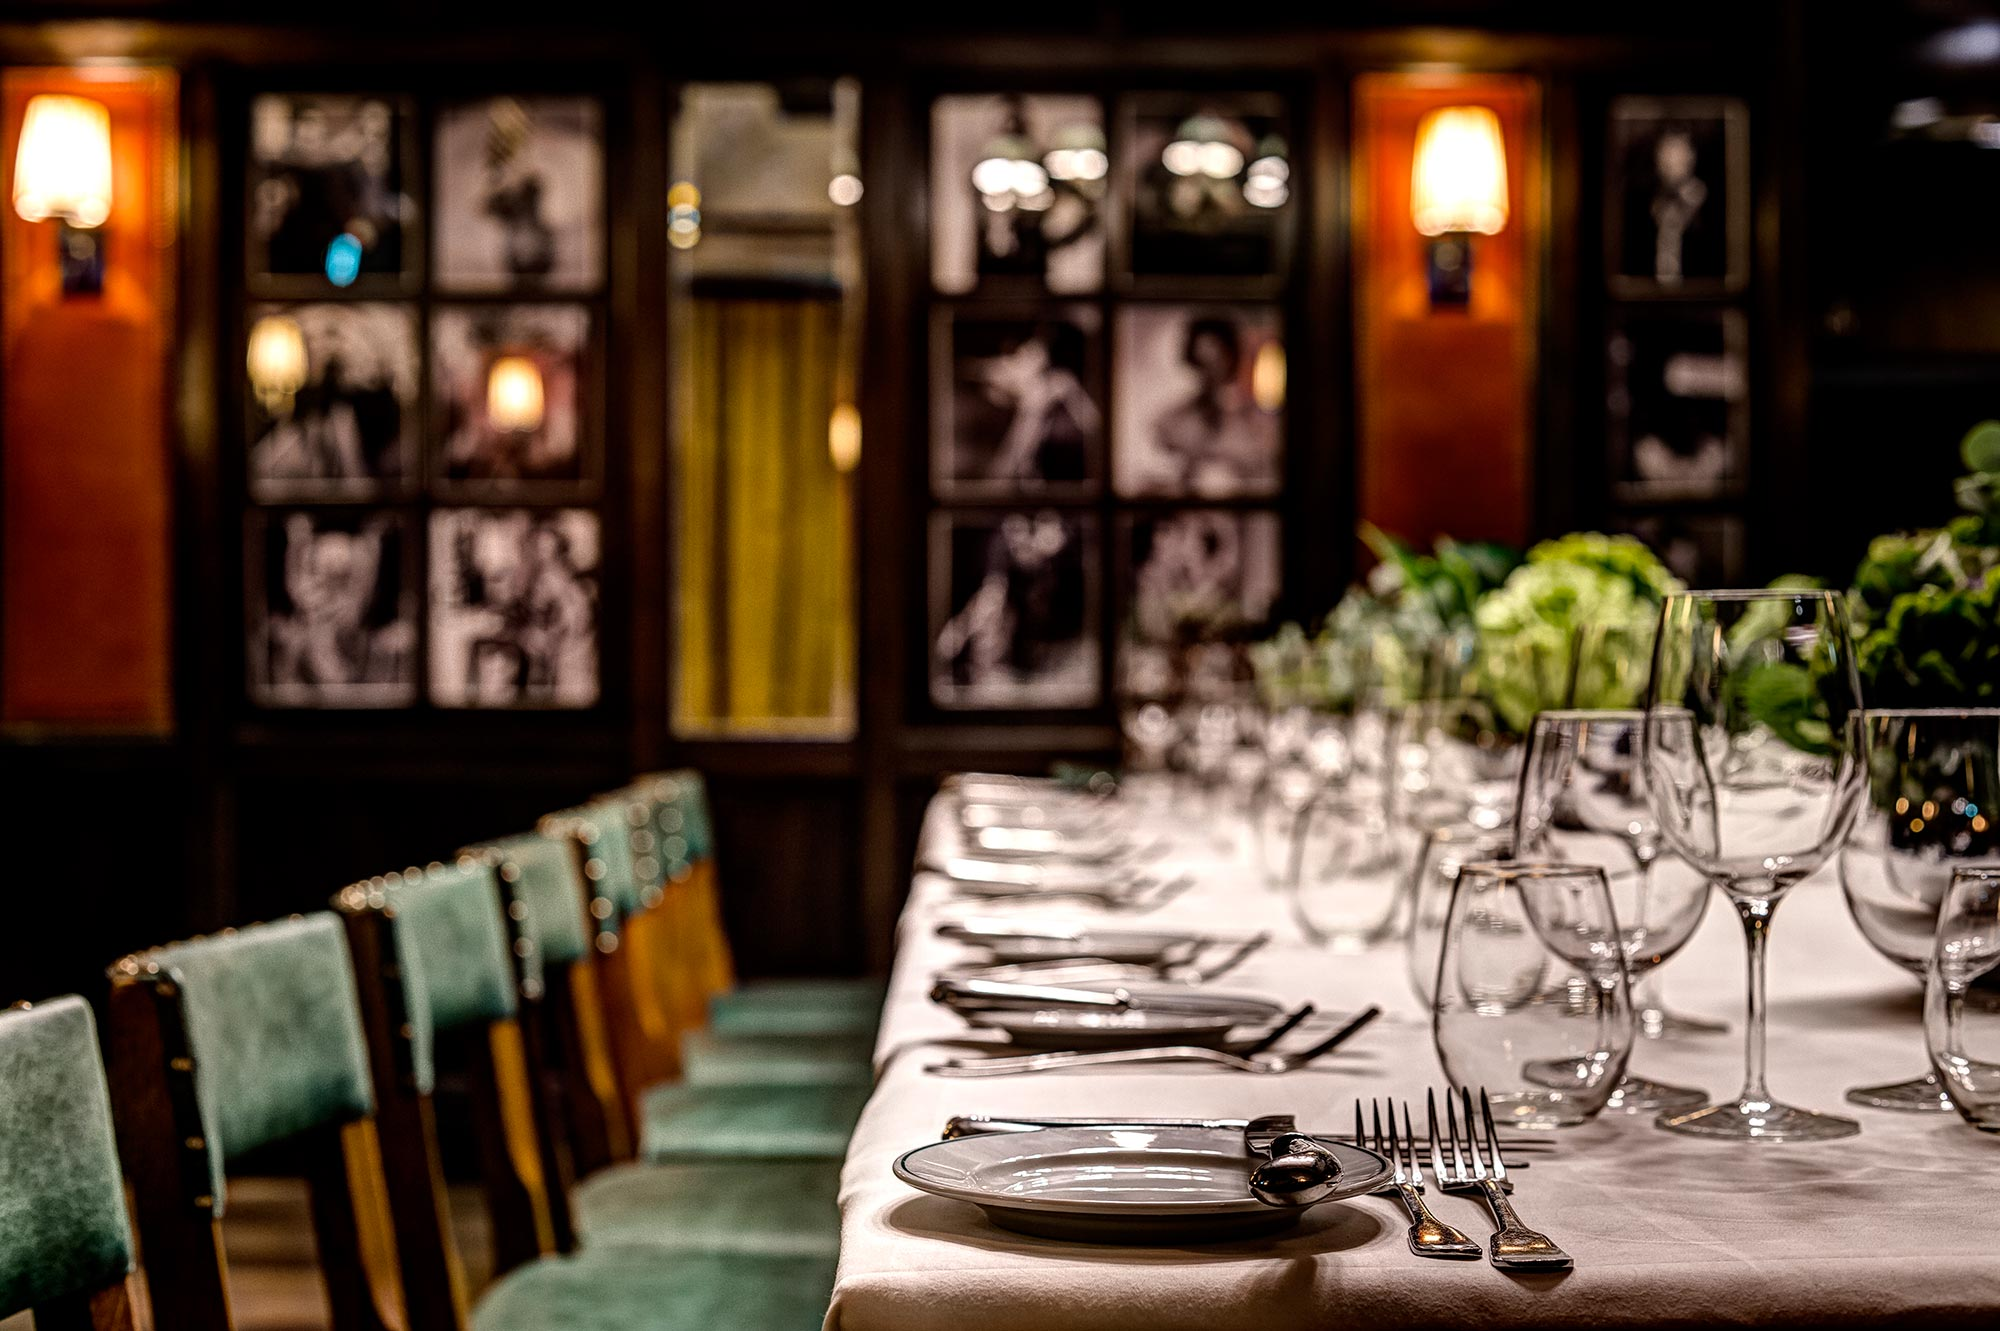 The Galatea Room at The Ivy Market Grill, one long table - The Ivy Market Grill